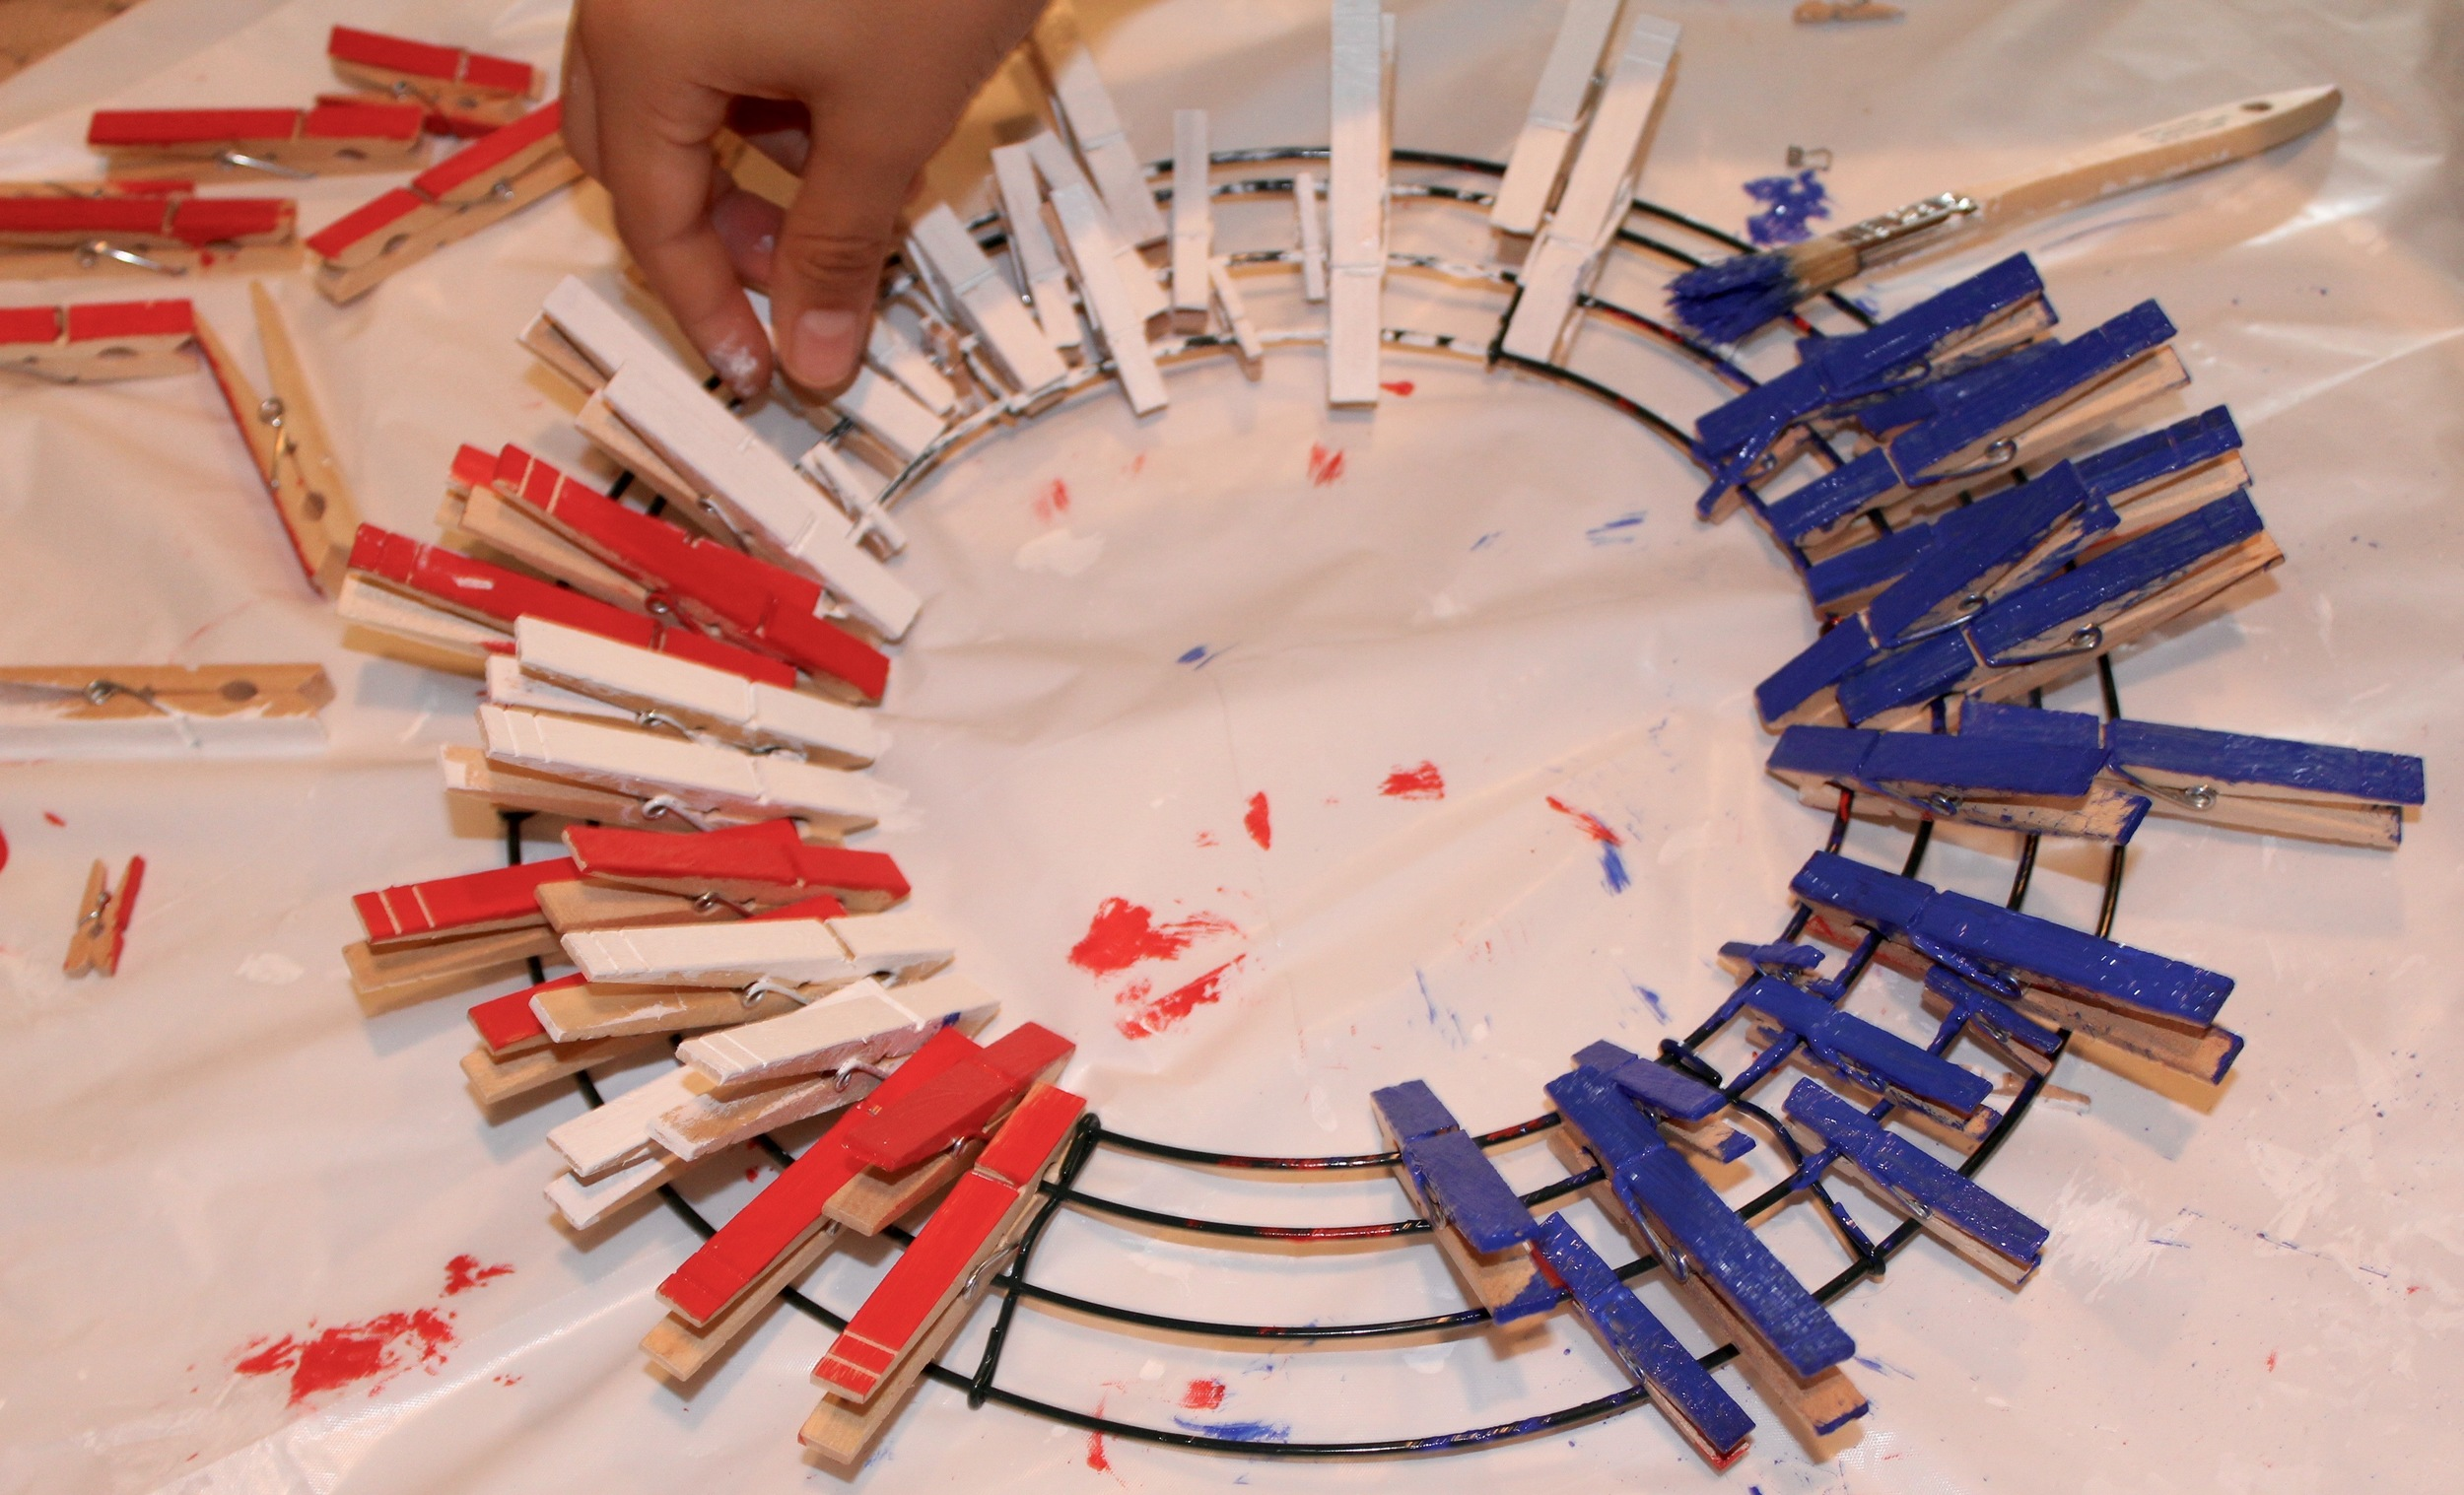 Arranging the clothespins